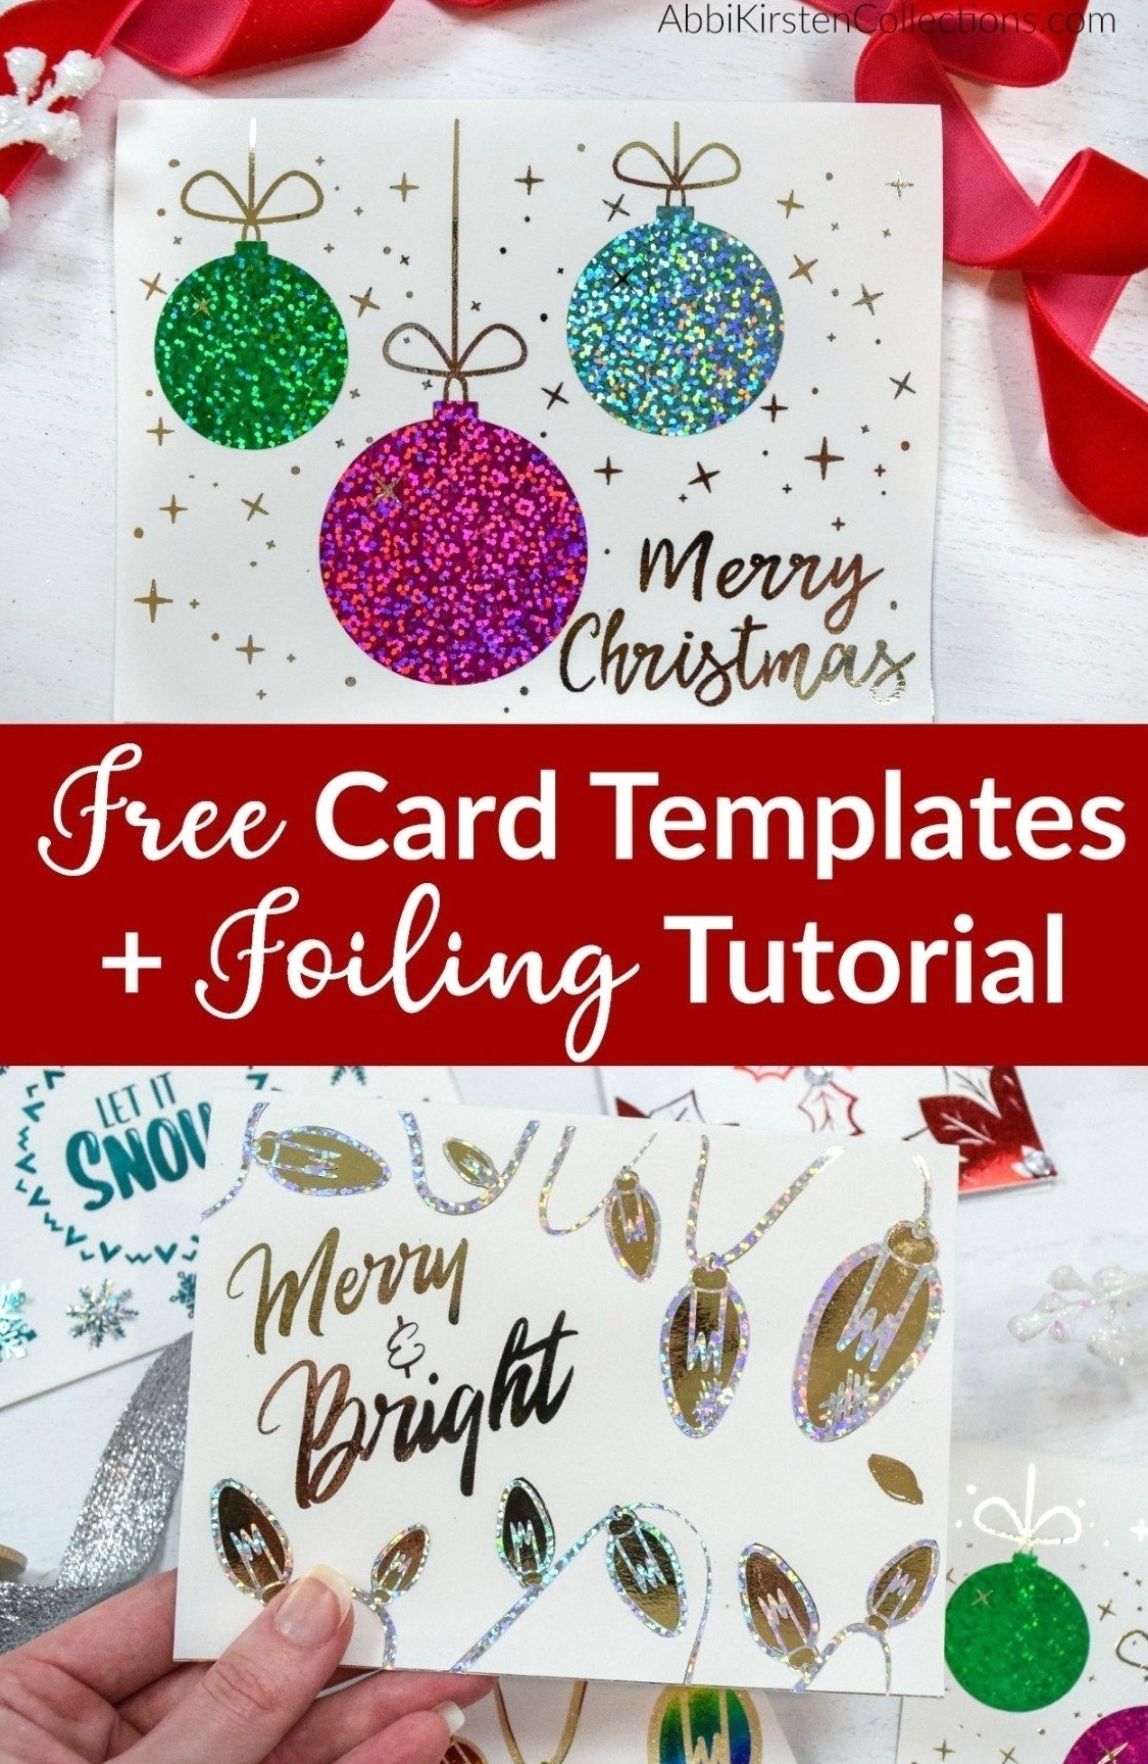 Free Christmas Card Templates Deco Foil Tutorial Christmas Card Templates Free Christmas Card Template Diy Christmas Cards Cricut